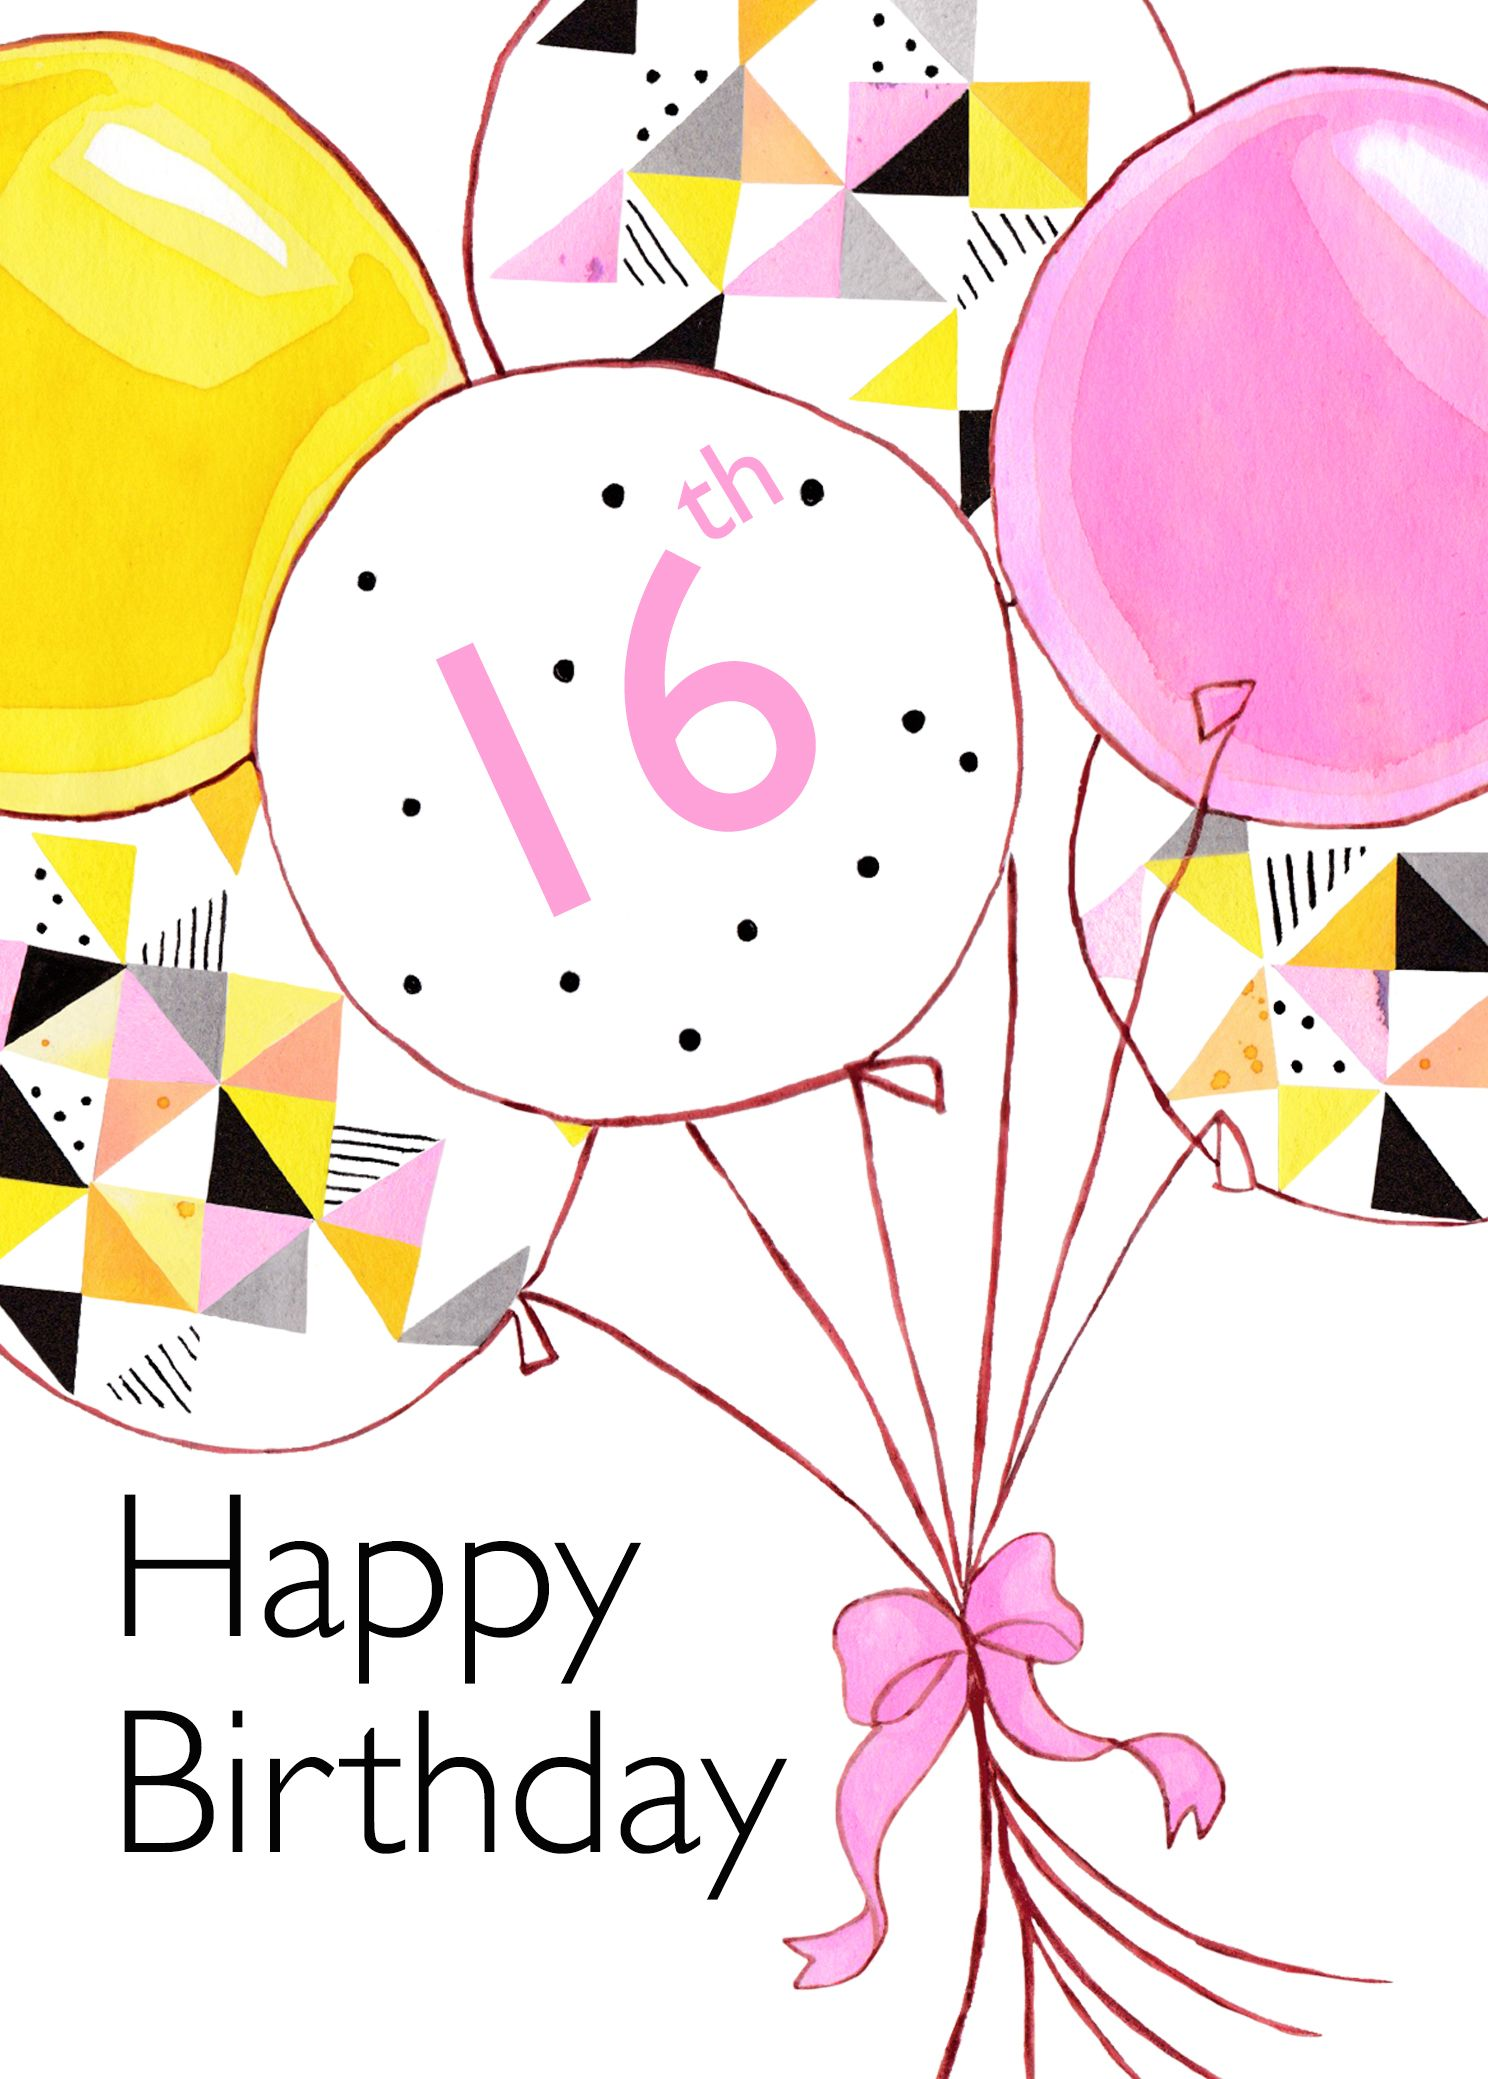 16th Birthday Card Balloons 2 50 Contemporary Geometric Design Blank Card By Between Sisters Studio 16th Birthday Card Happy 2nd Birthday Birthday Cards